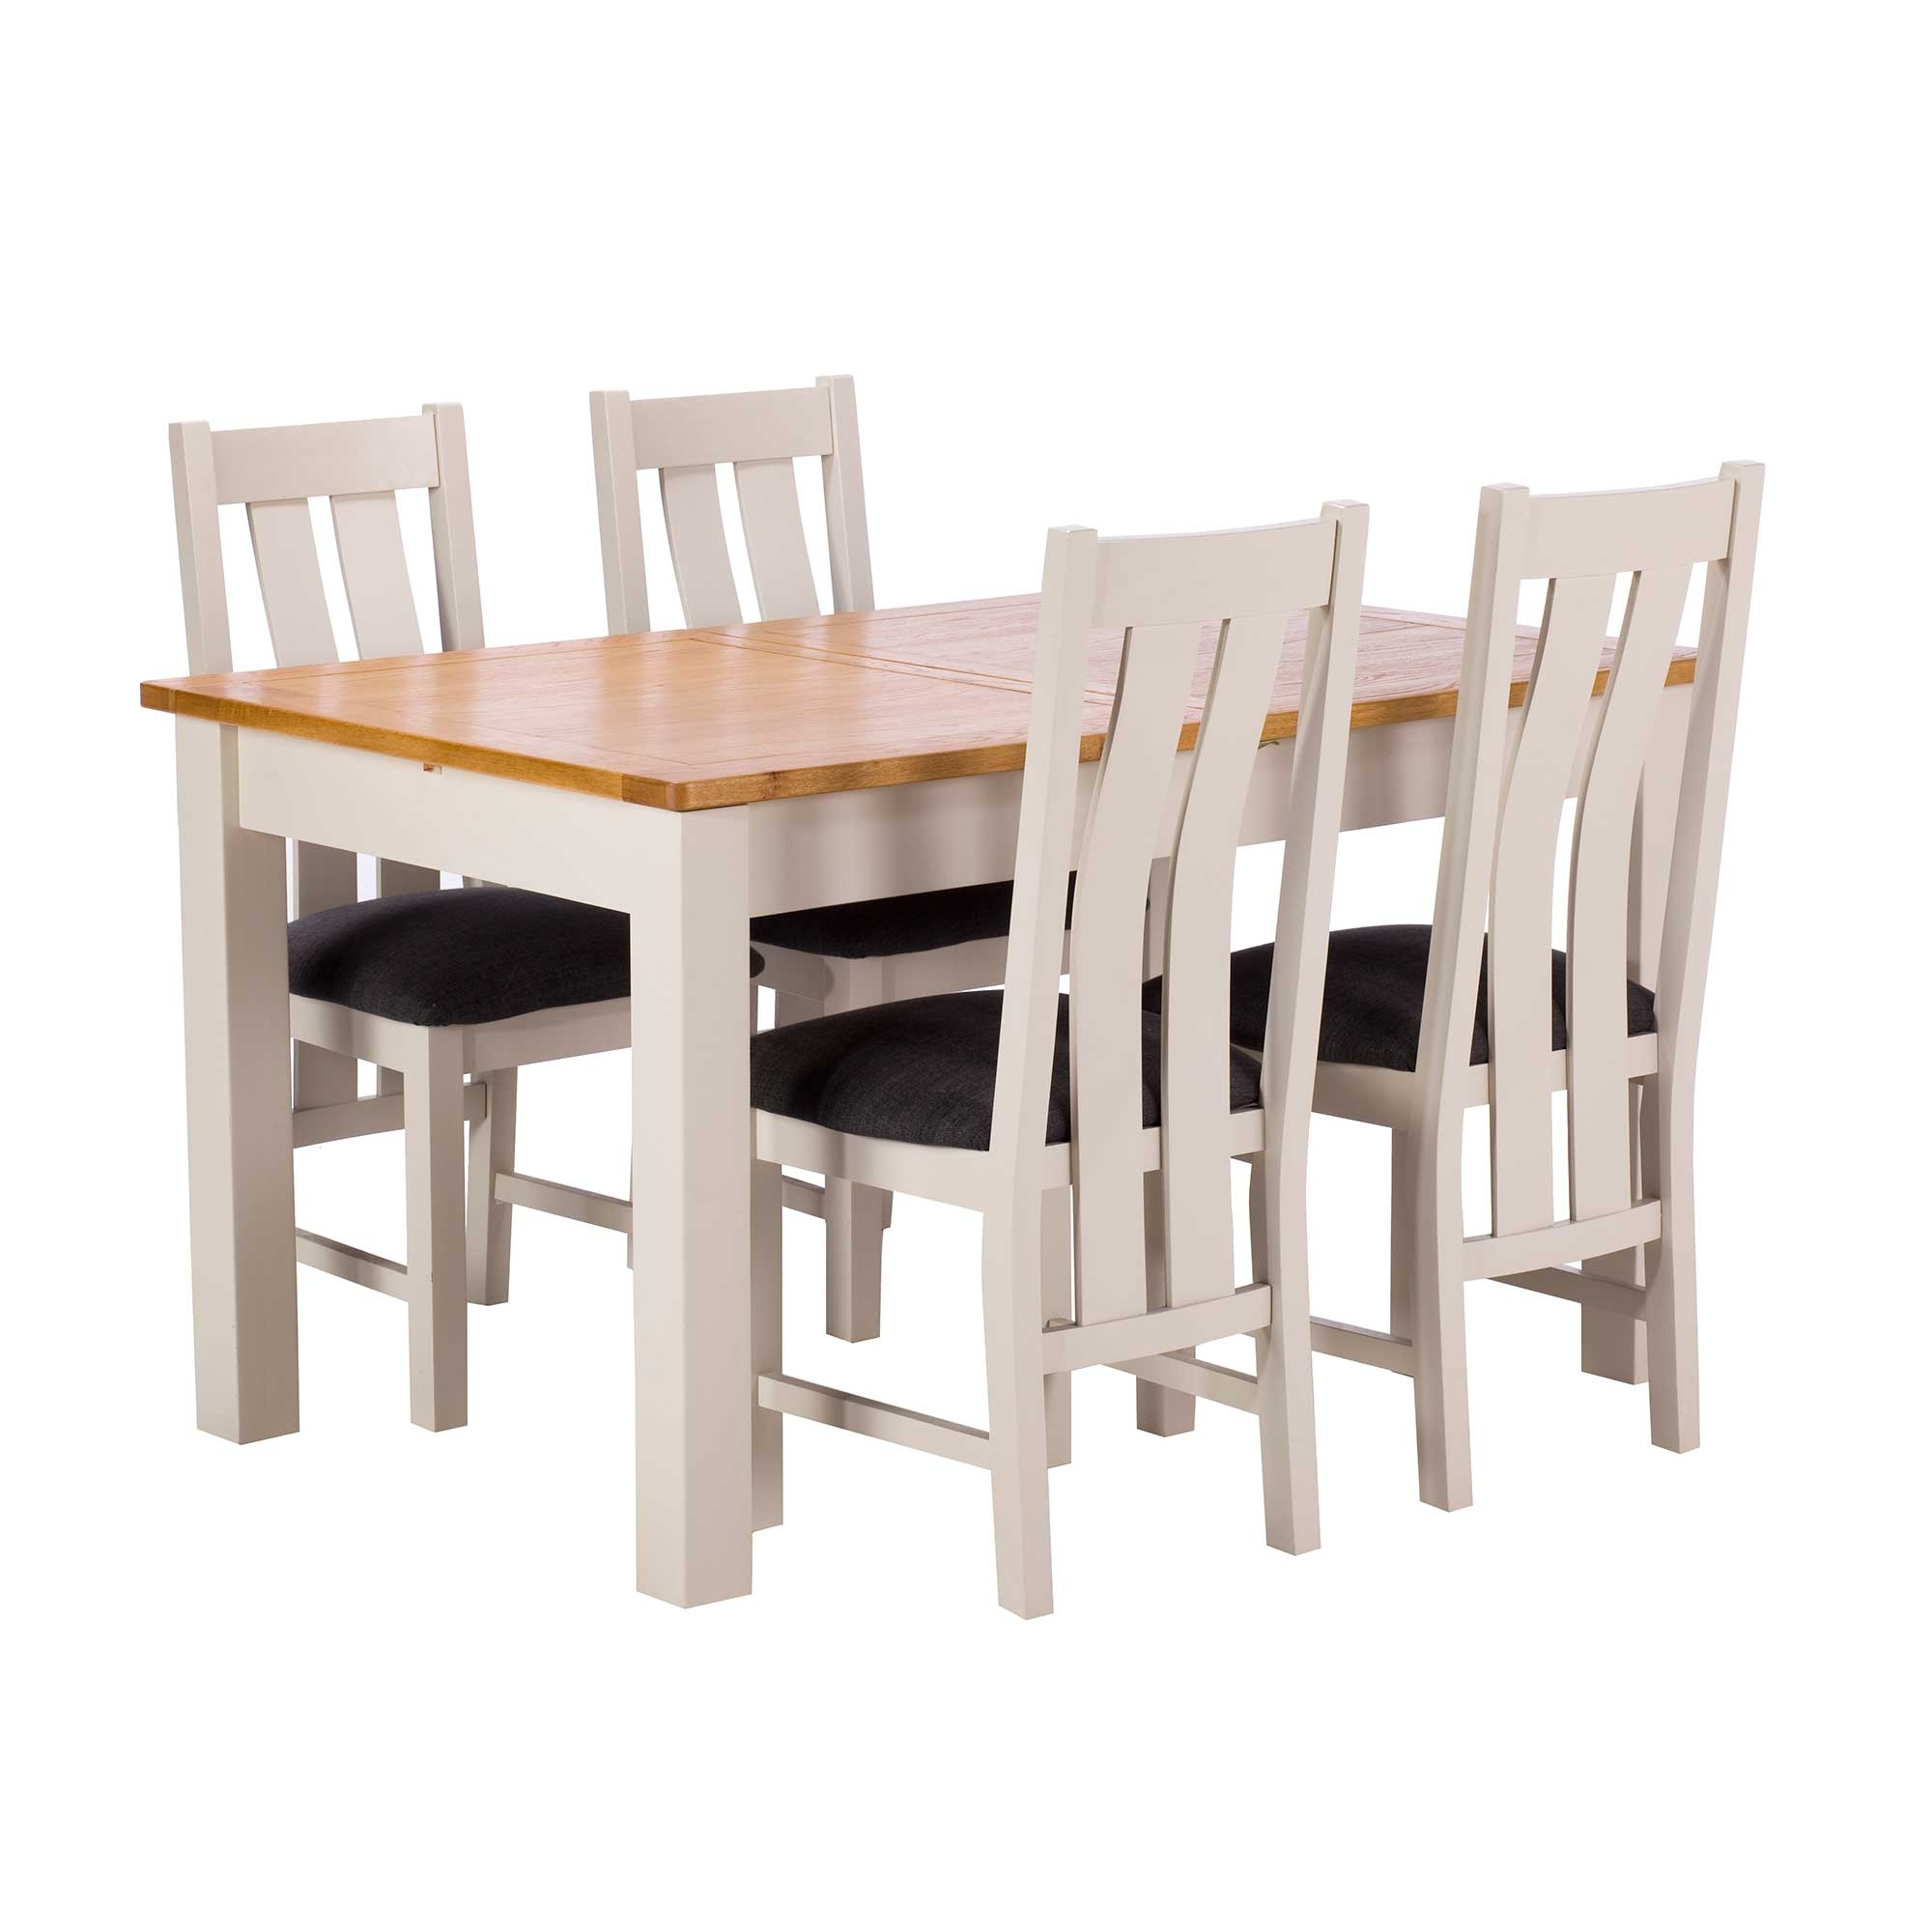 Most Current Extending Dining Sets Intended For Eskdale Extending Dining Table And 4 Chairs, Linen (View 24 of 25)